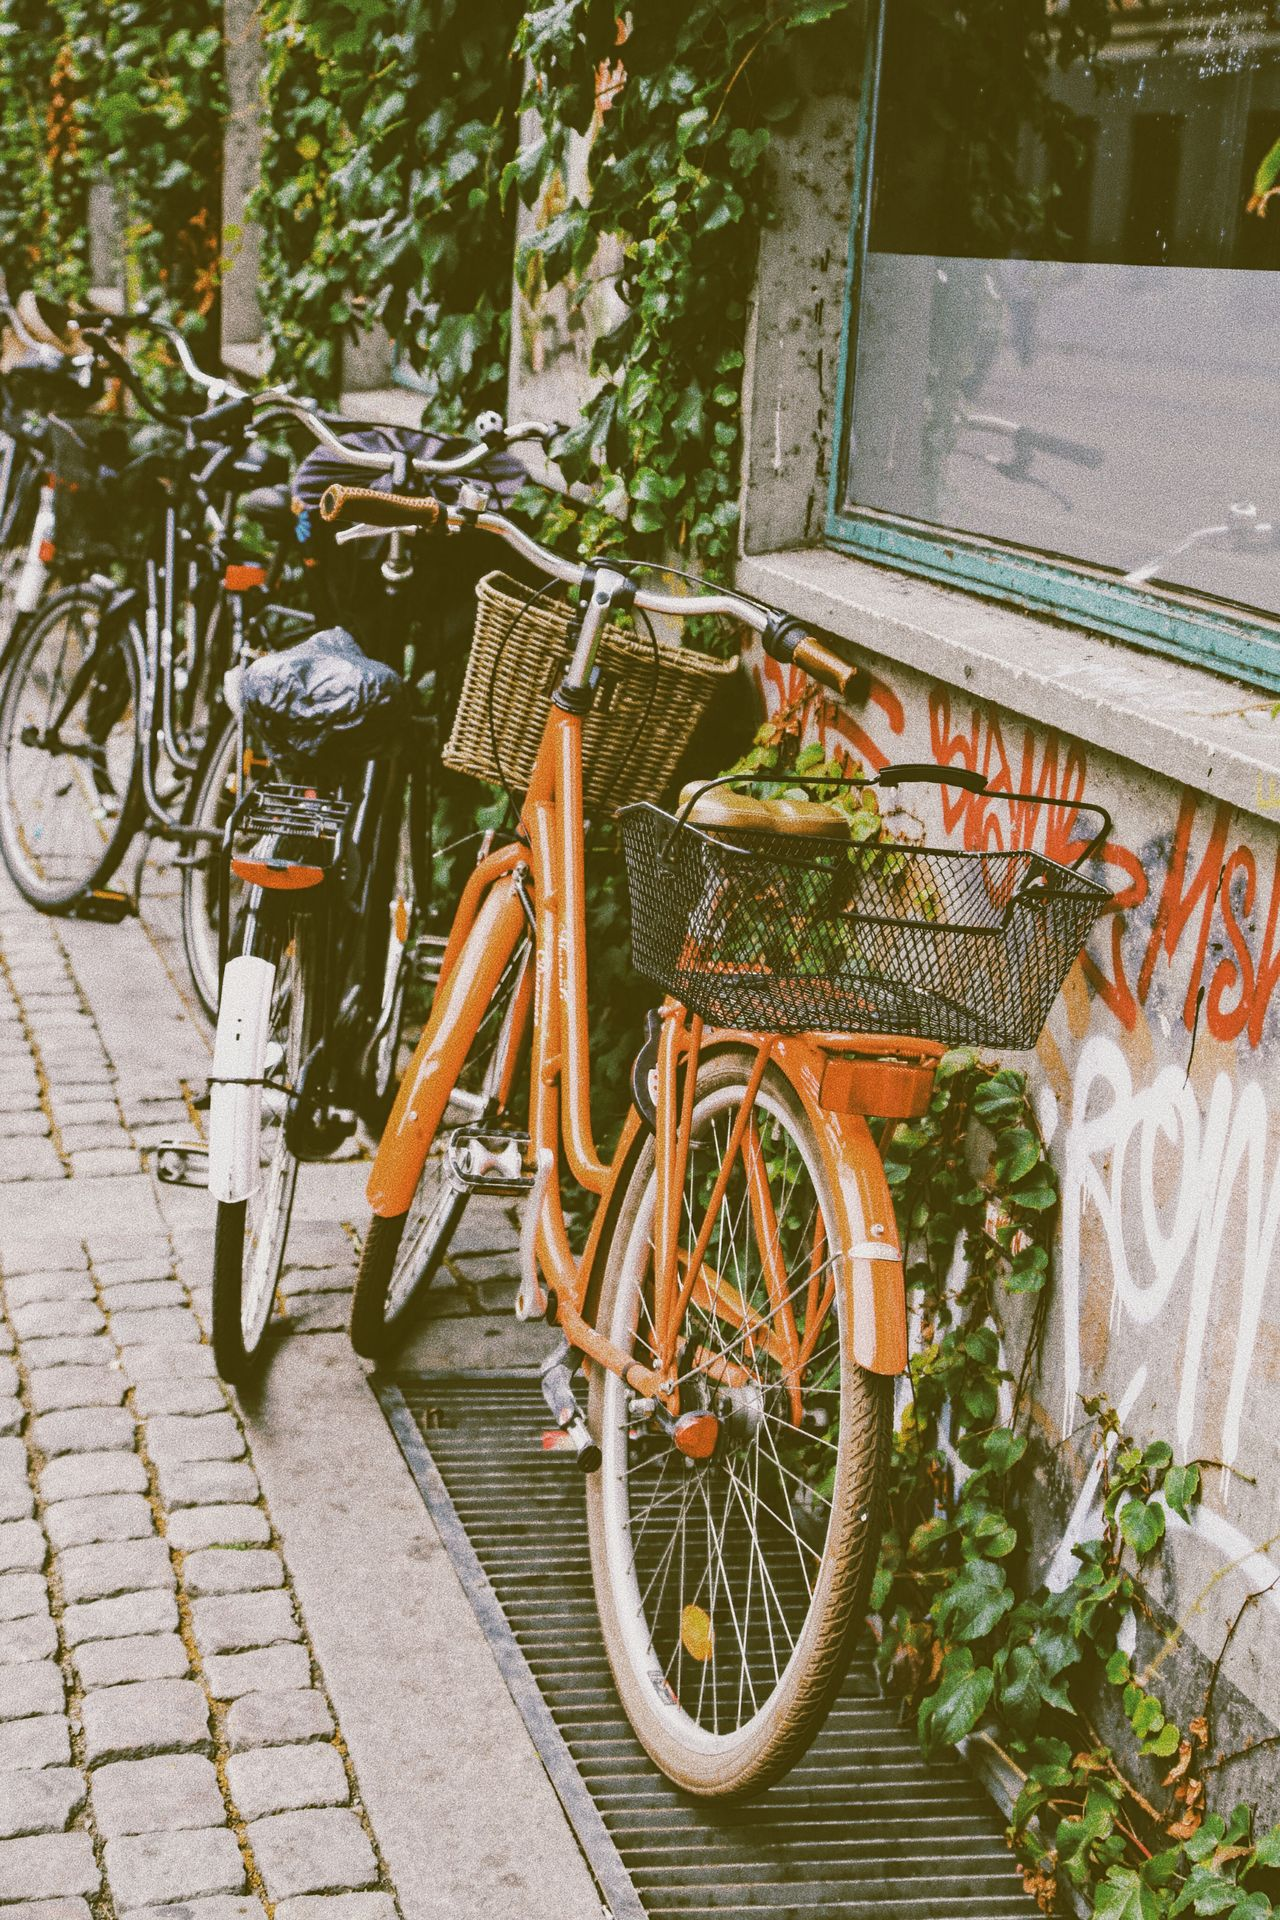 Bicycle Mode Of Transport Land Vehicle Transportation Stationary Parking Outdoors Bicycle Basket Day No People Cityview Vintage Vintage Style Wall Rustic Style Bicycle Parking Transportation Fence Street Photography Vintage Stuff City View  Rustic Charm Rustic Beauty City Street Outdoor Photography